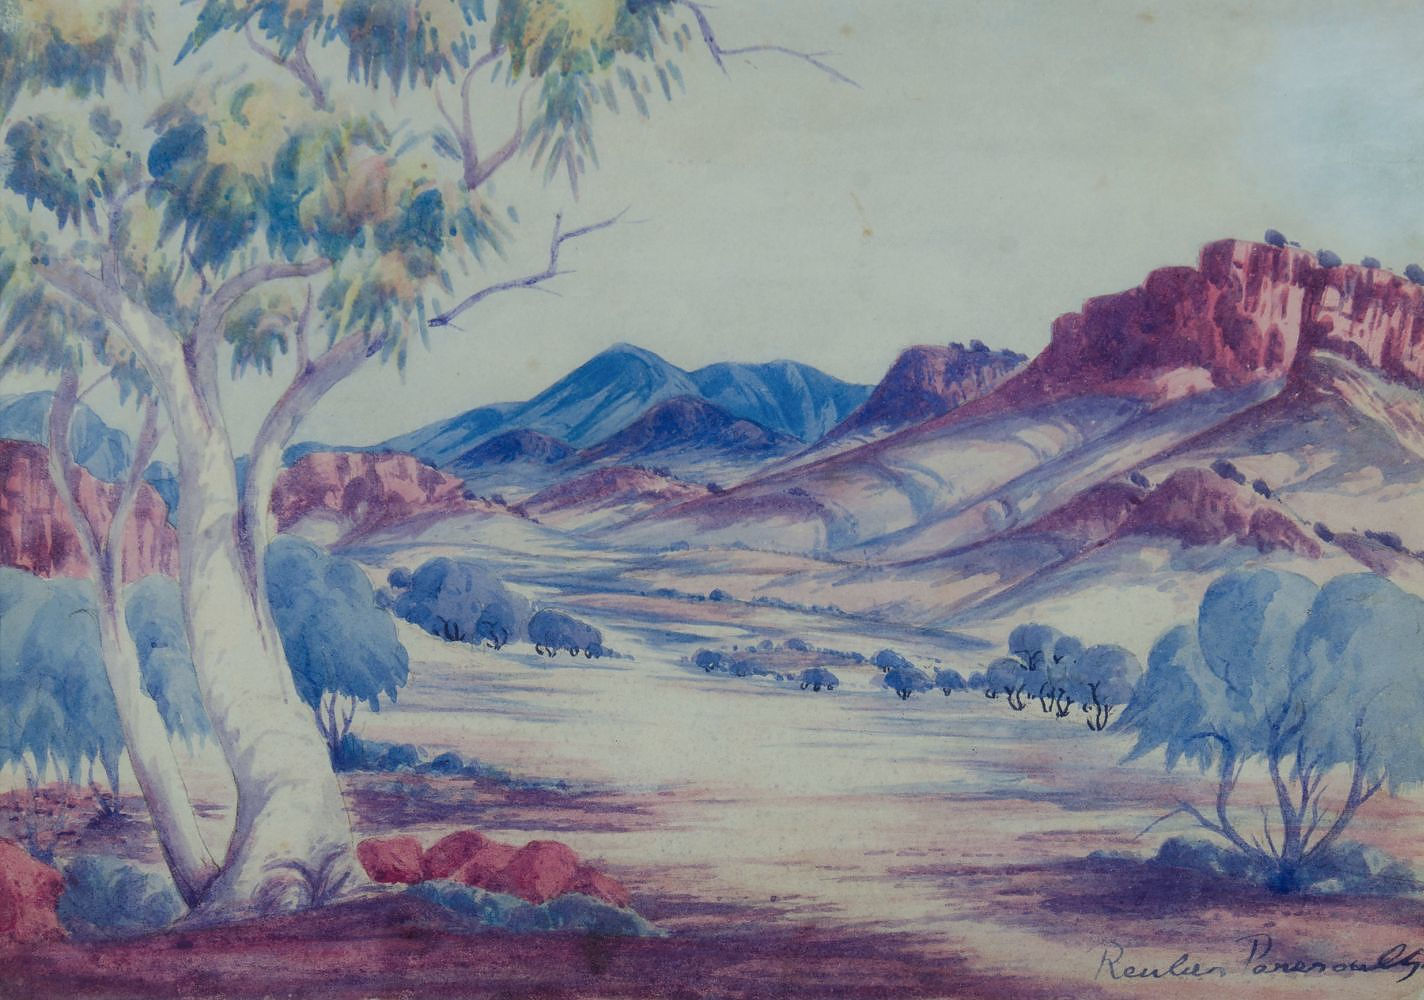 'PAREROULTJA, Reuben (1916-1984) Central Australian Landscape Watercolor'